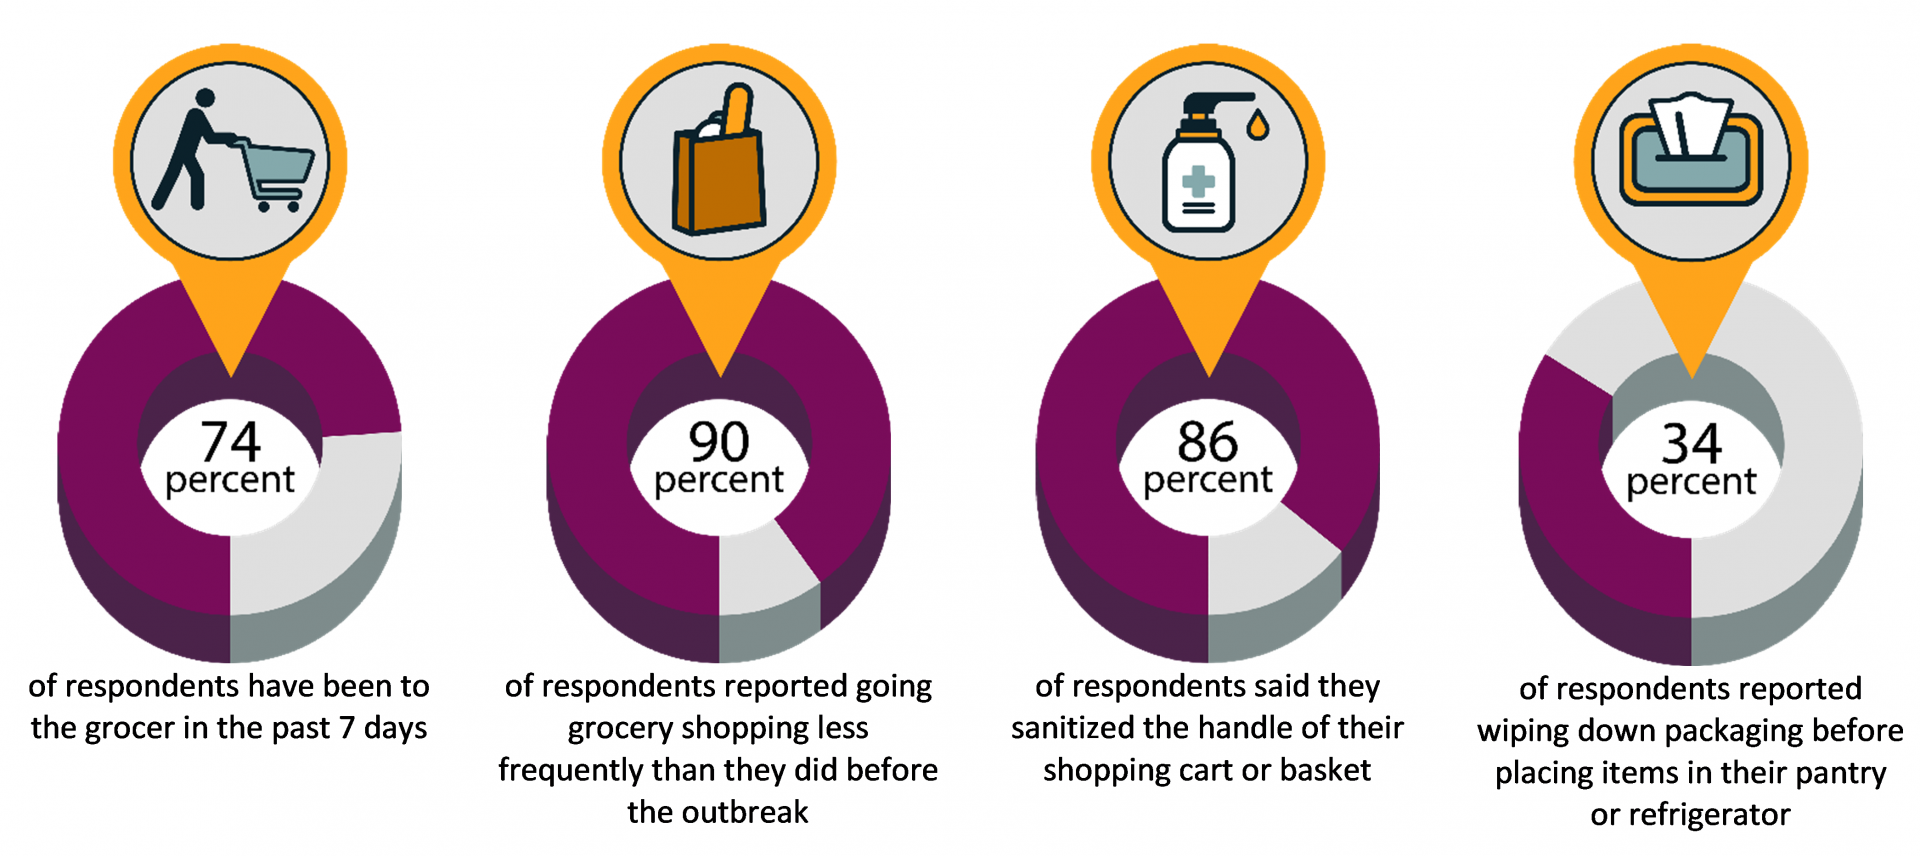 Here's what Ohioans said about their grocery shopping behaviors in the April survey.